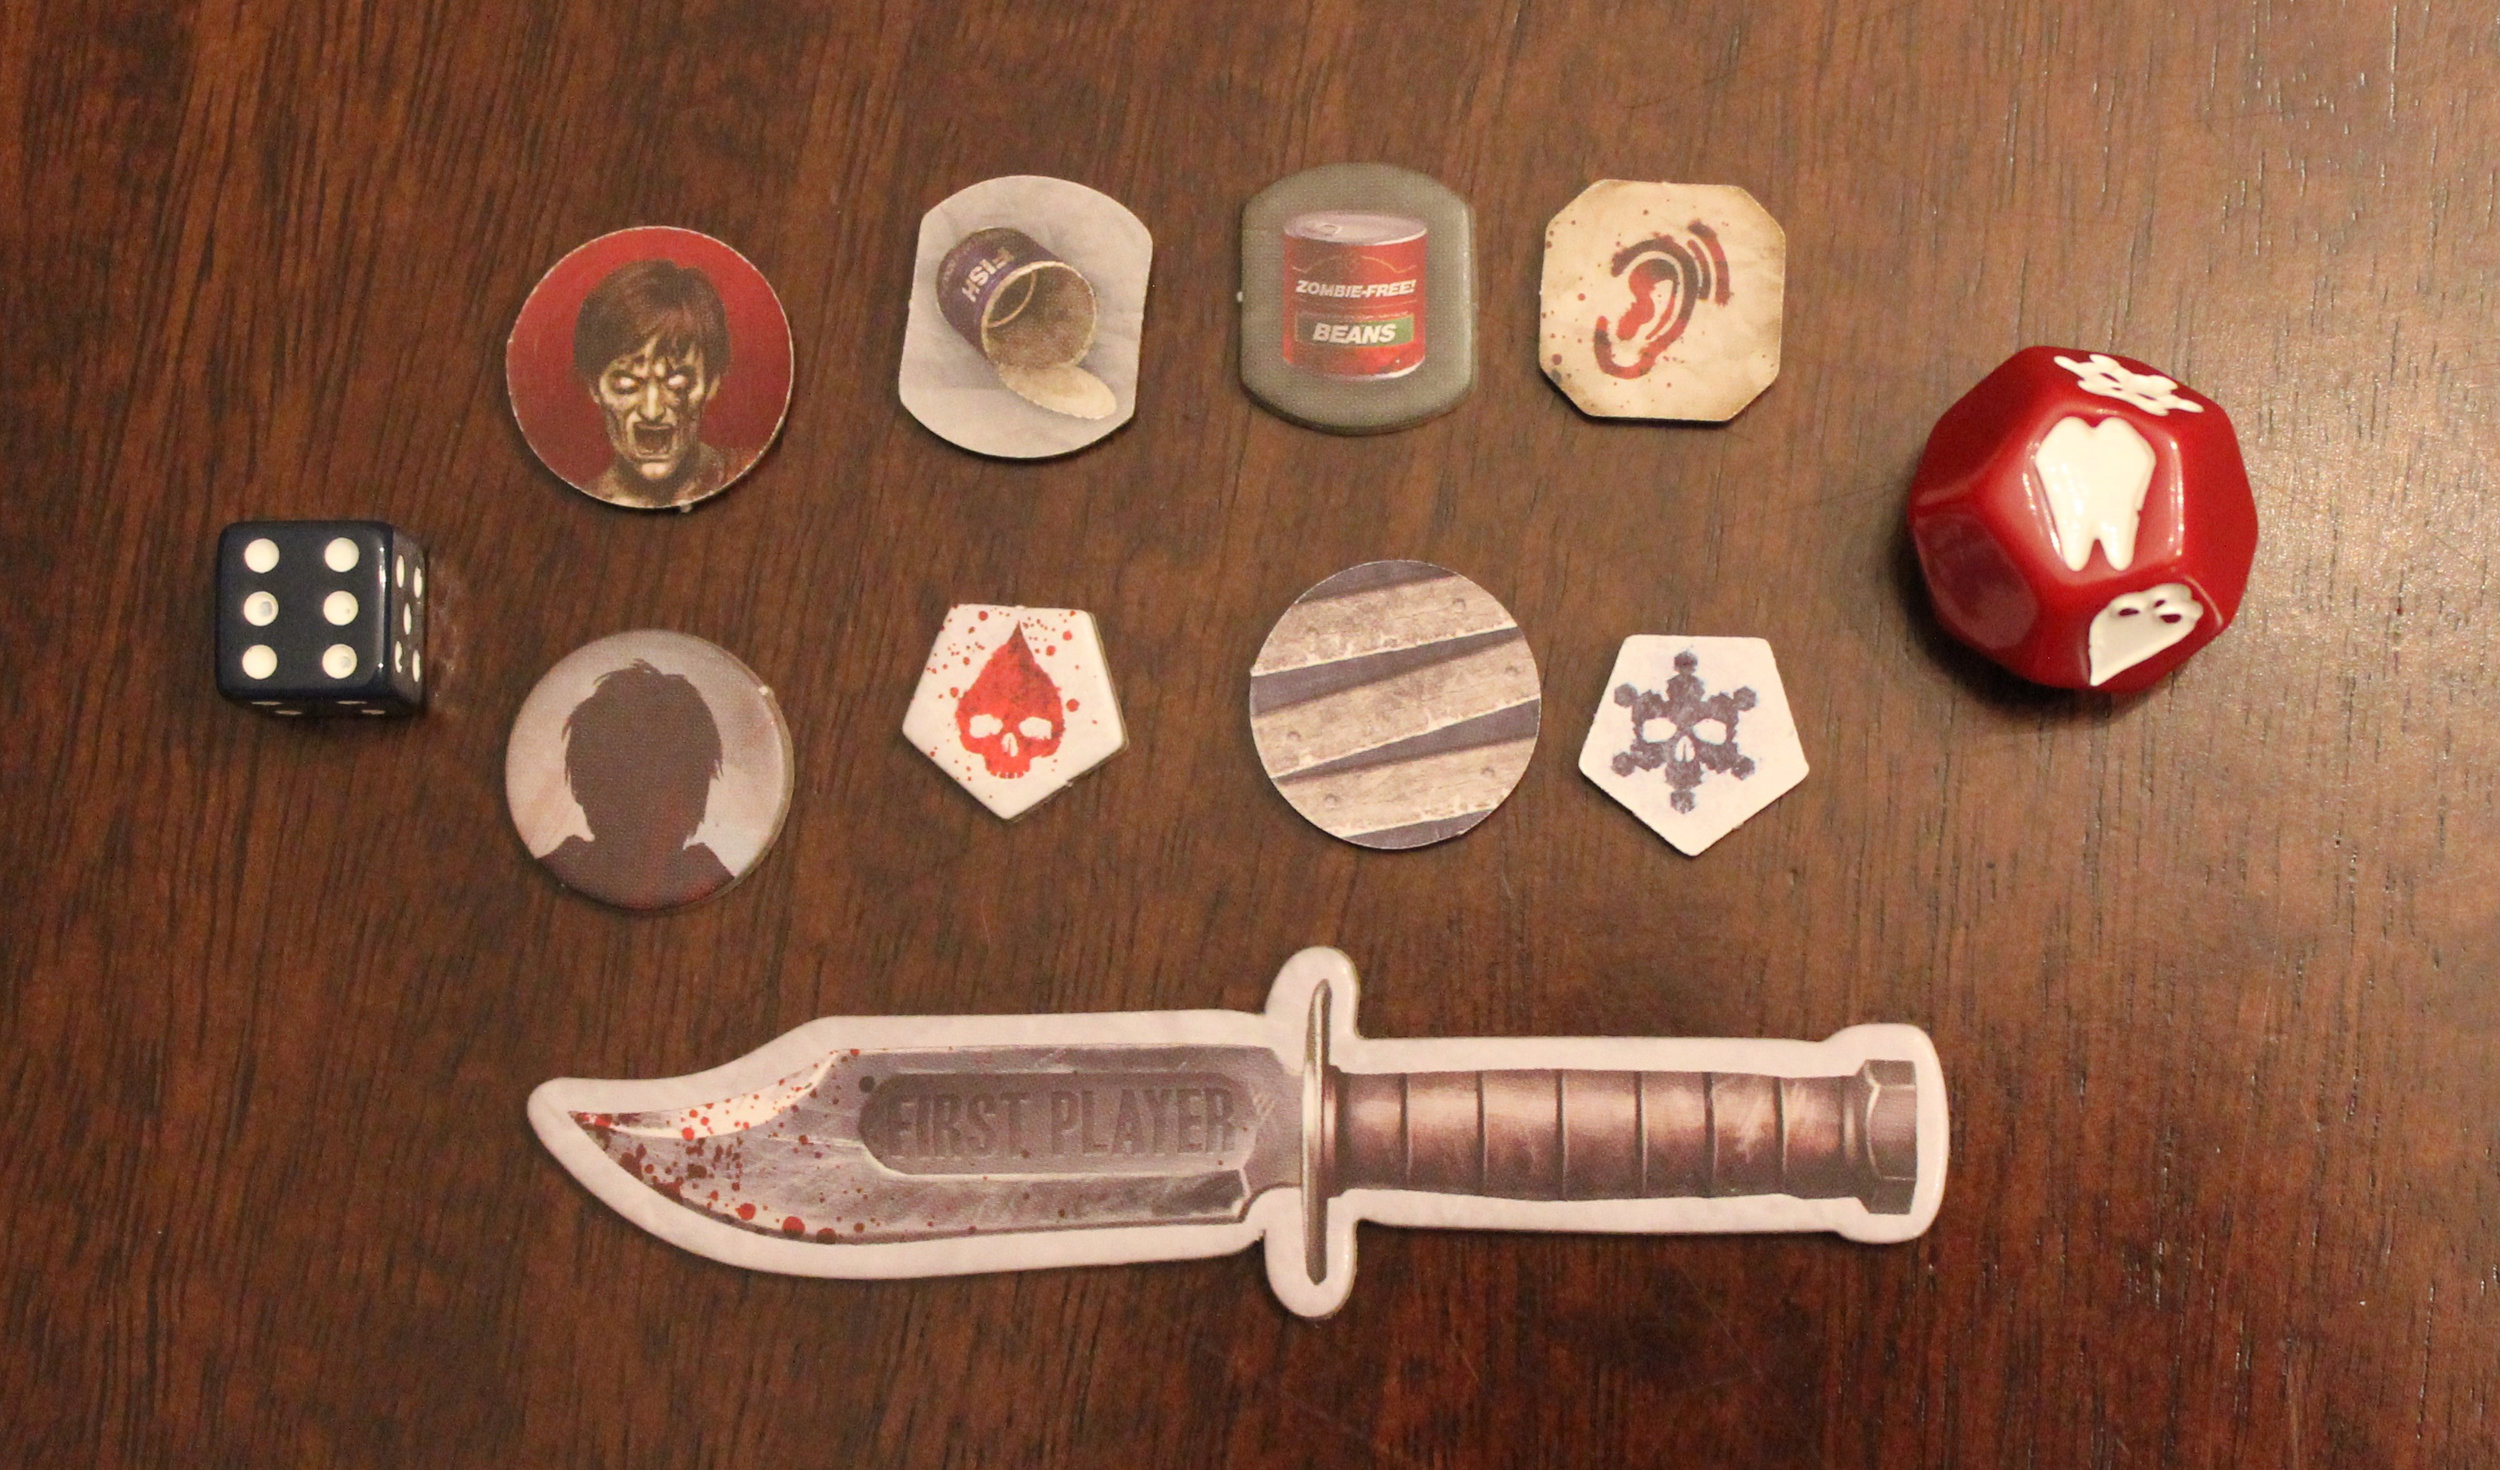 Exposure die is the red one on the right. Also pictured, the knife to indicate first player and the various tokens used throughout the game.